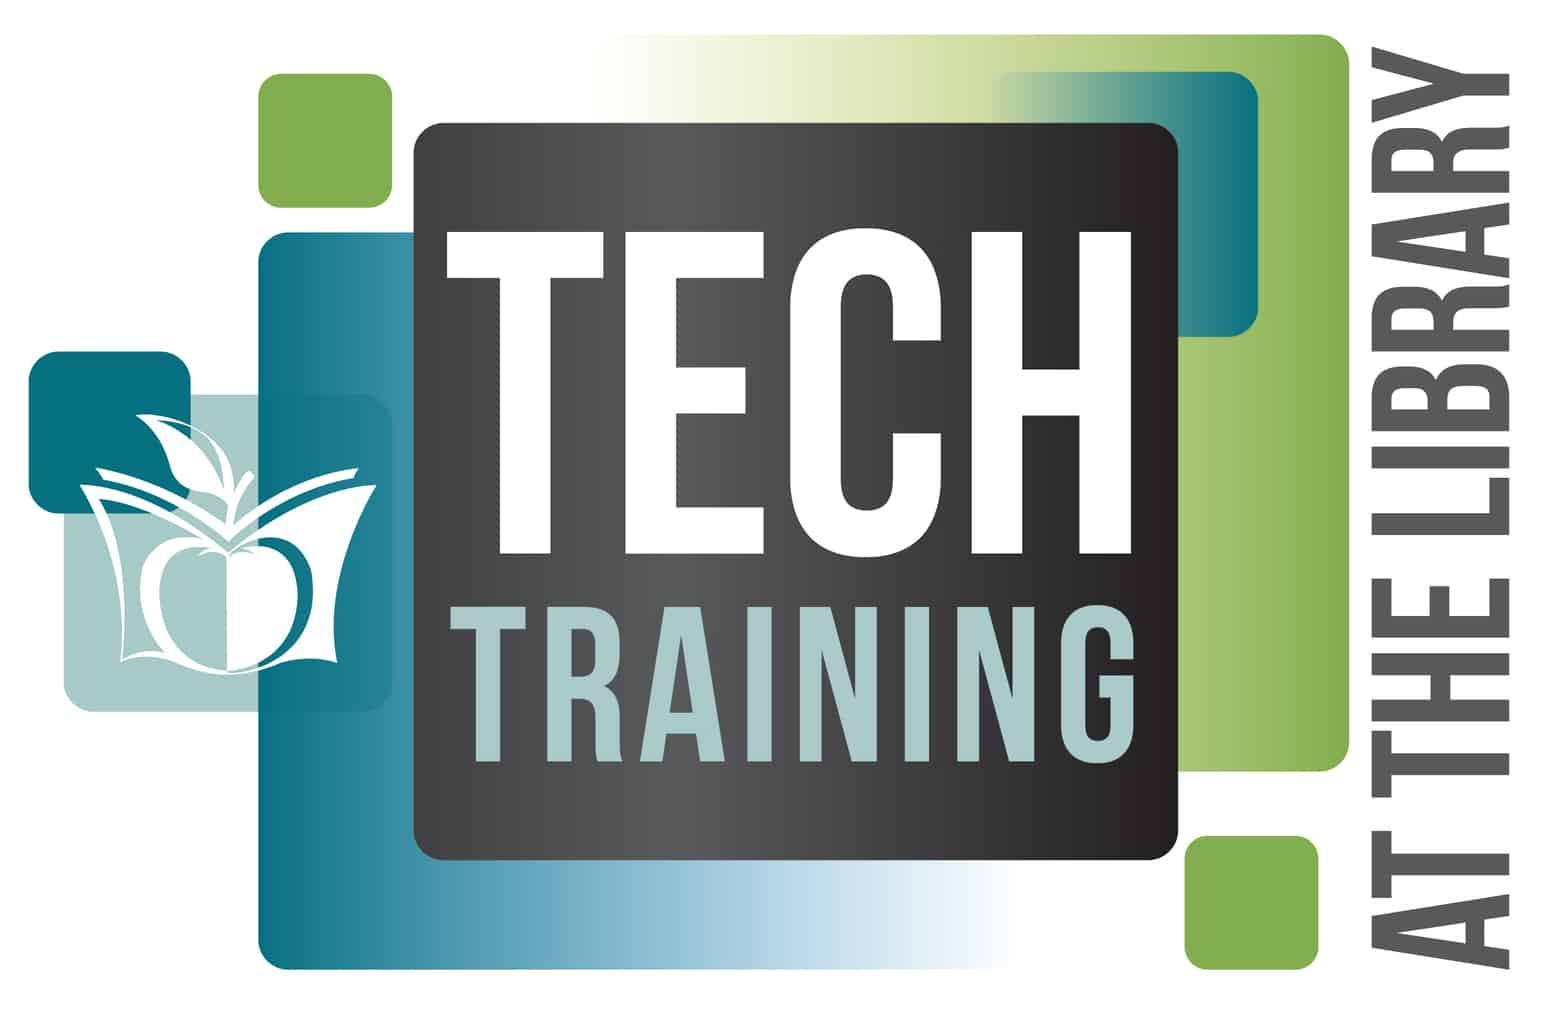 Tech Training logo